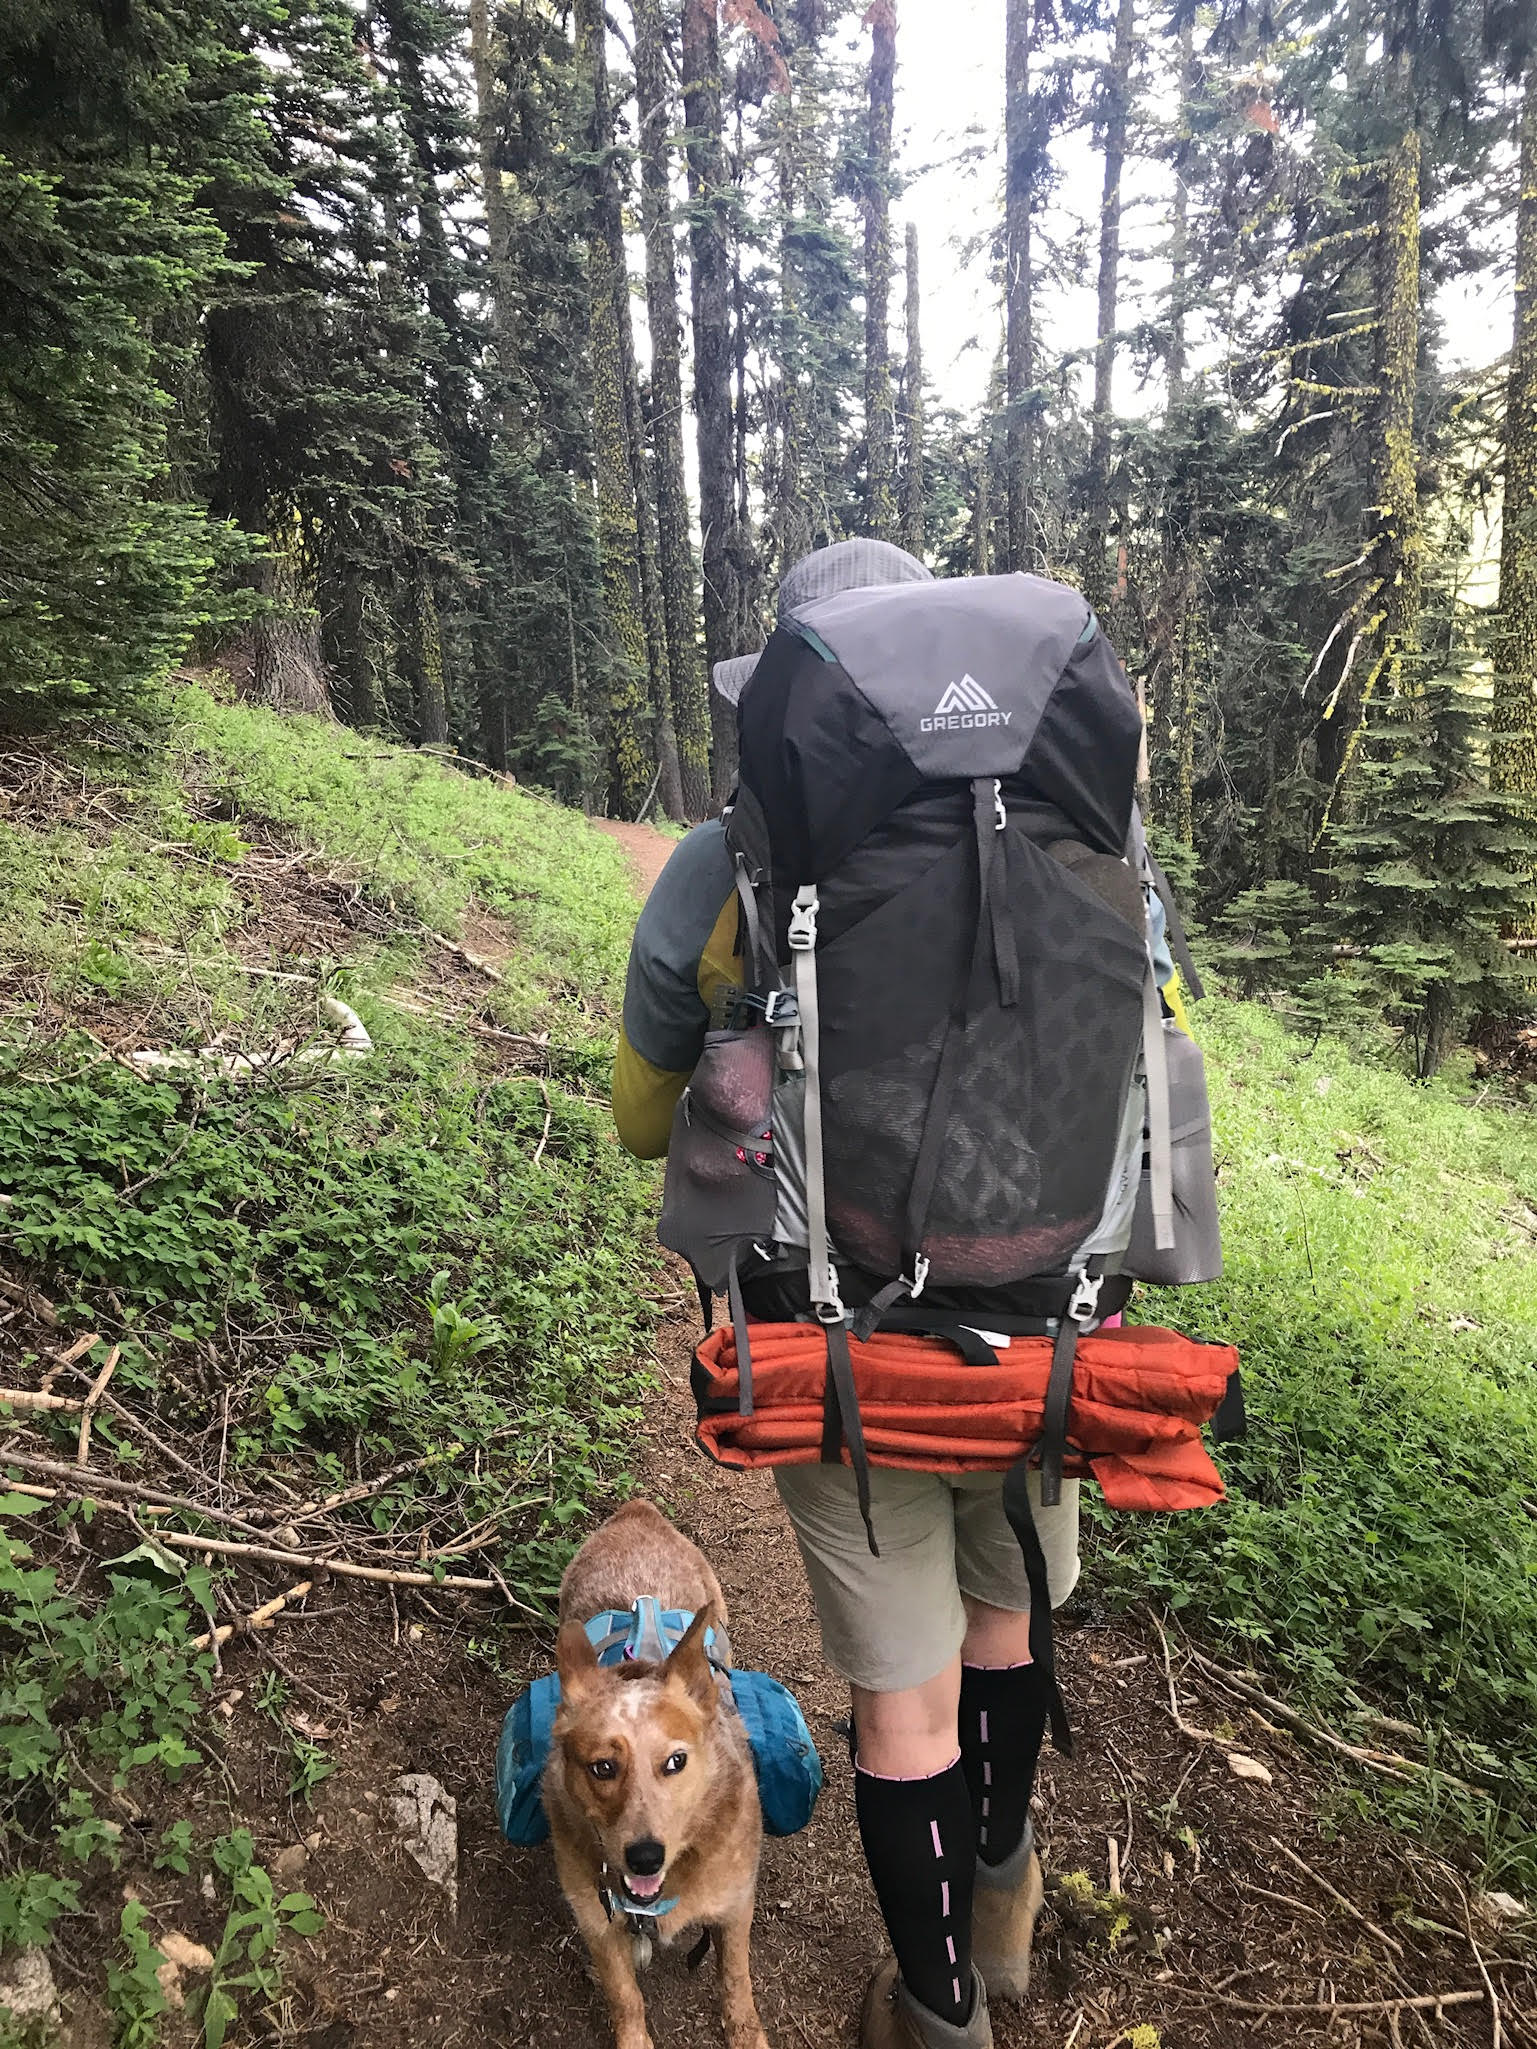 Backpacker wiht Gregory pack and dog on the trail.